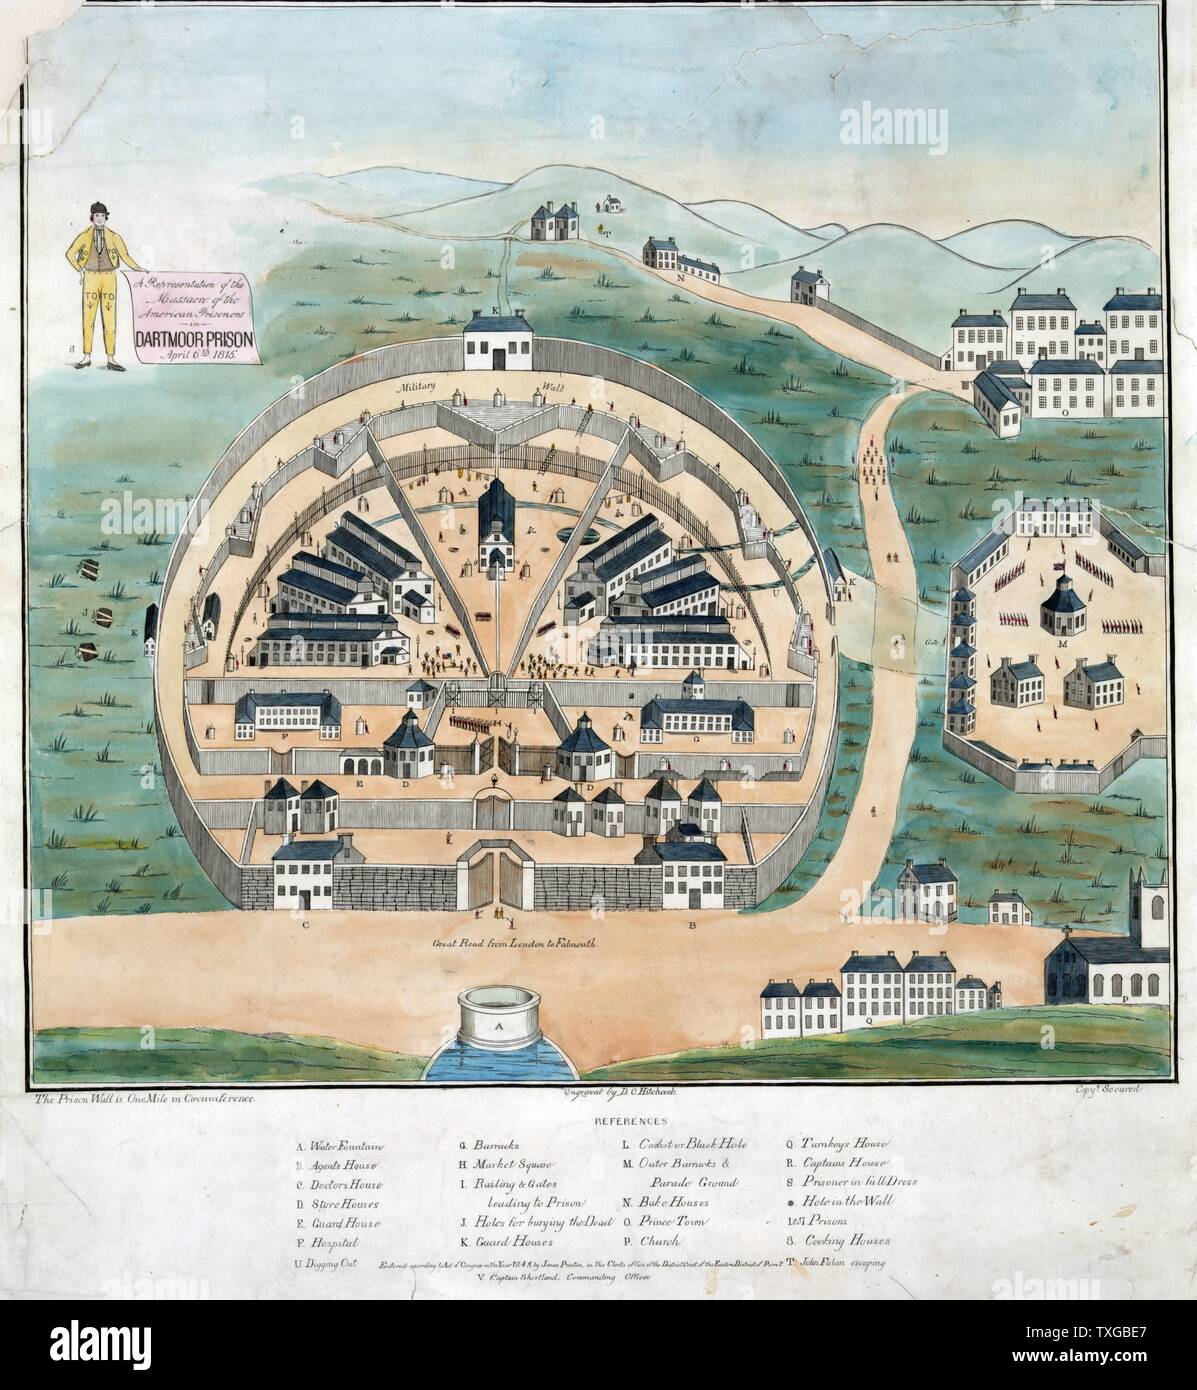 A representation of the massacre of American prisoners in Dartmoor Prison, April 6, 1815. Print shows Dartmoor Prison in Devon, England, where American prisoners of war captured by British forces, especially at sea, were confined, even after the Treaty of Ghent was signed in December 1814. Angered at being left behind, prisoners burned U.S. agent Reuben G. Beasley in effigy, which led to a confrontation with prison guards and a reduction of rations. Fearful of insubordination, guards shot the prisoners, killing 7 and wounding 31. - Stock Image